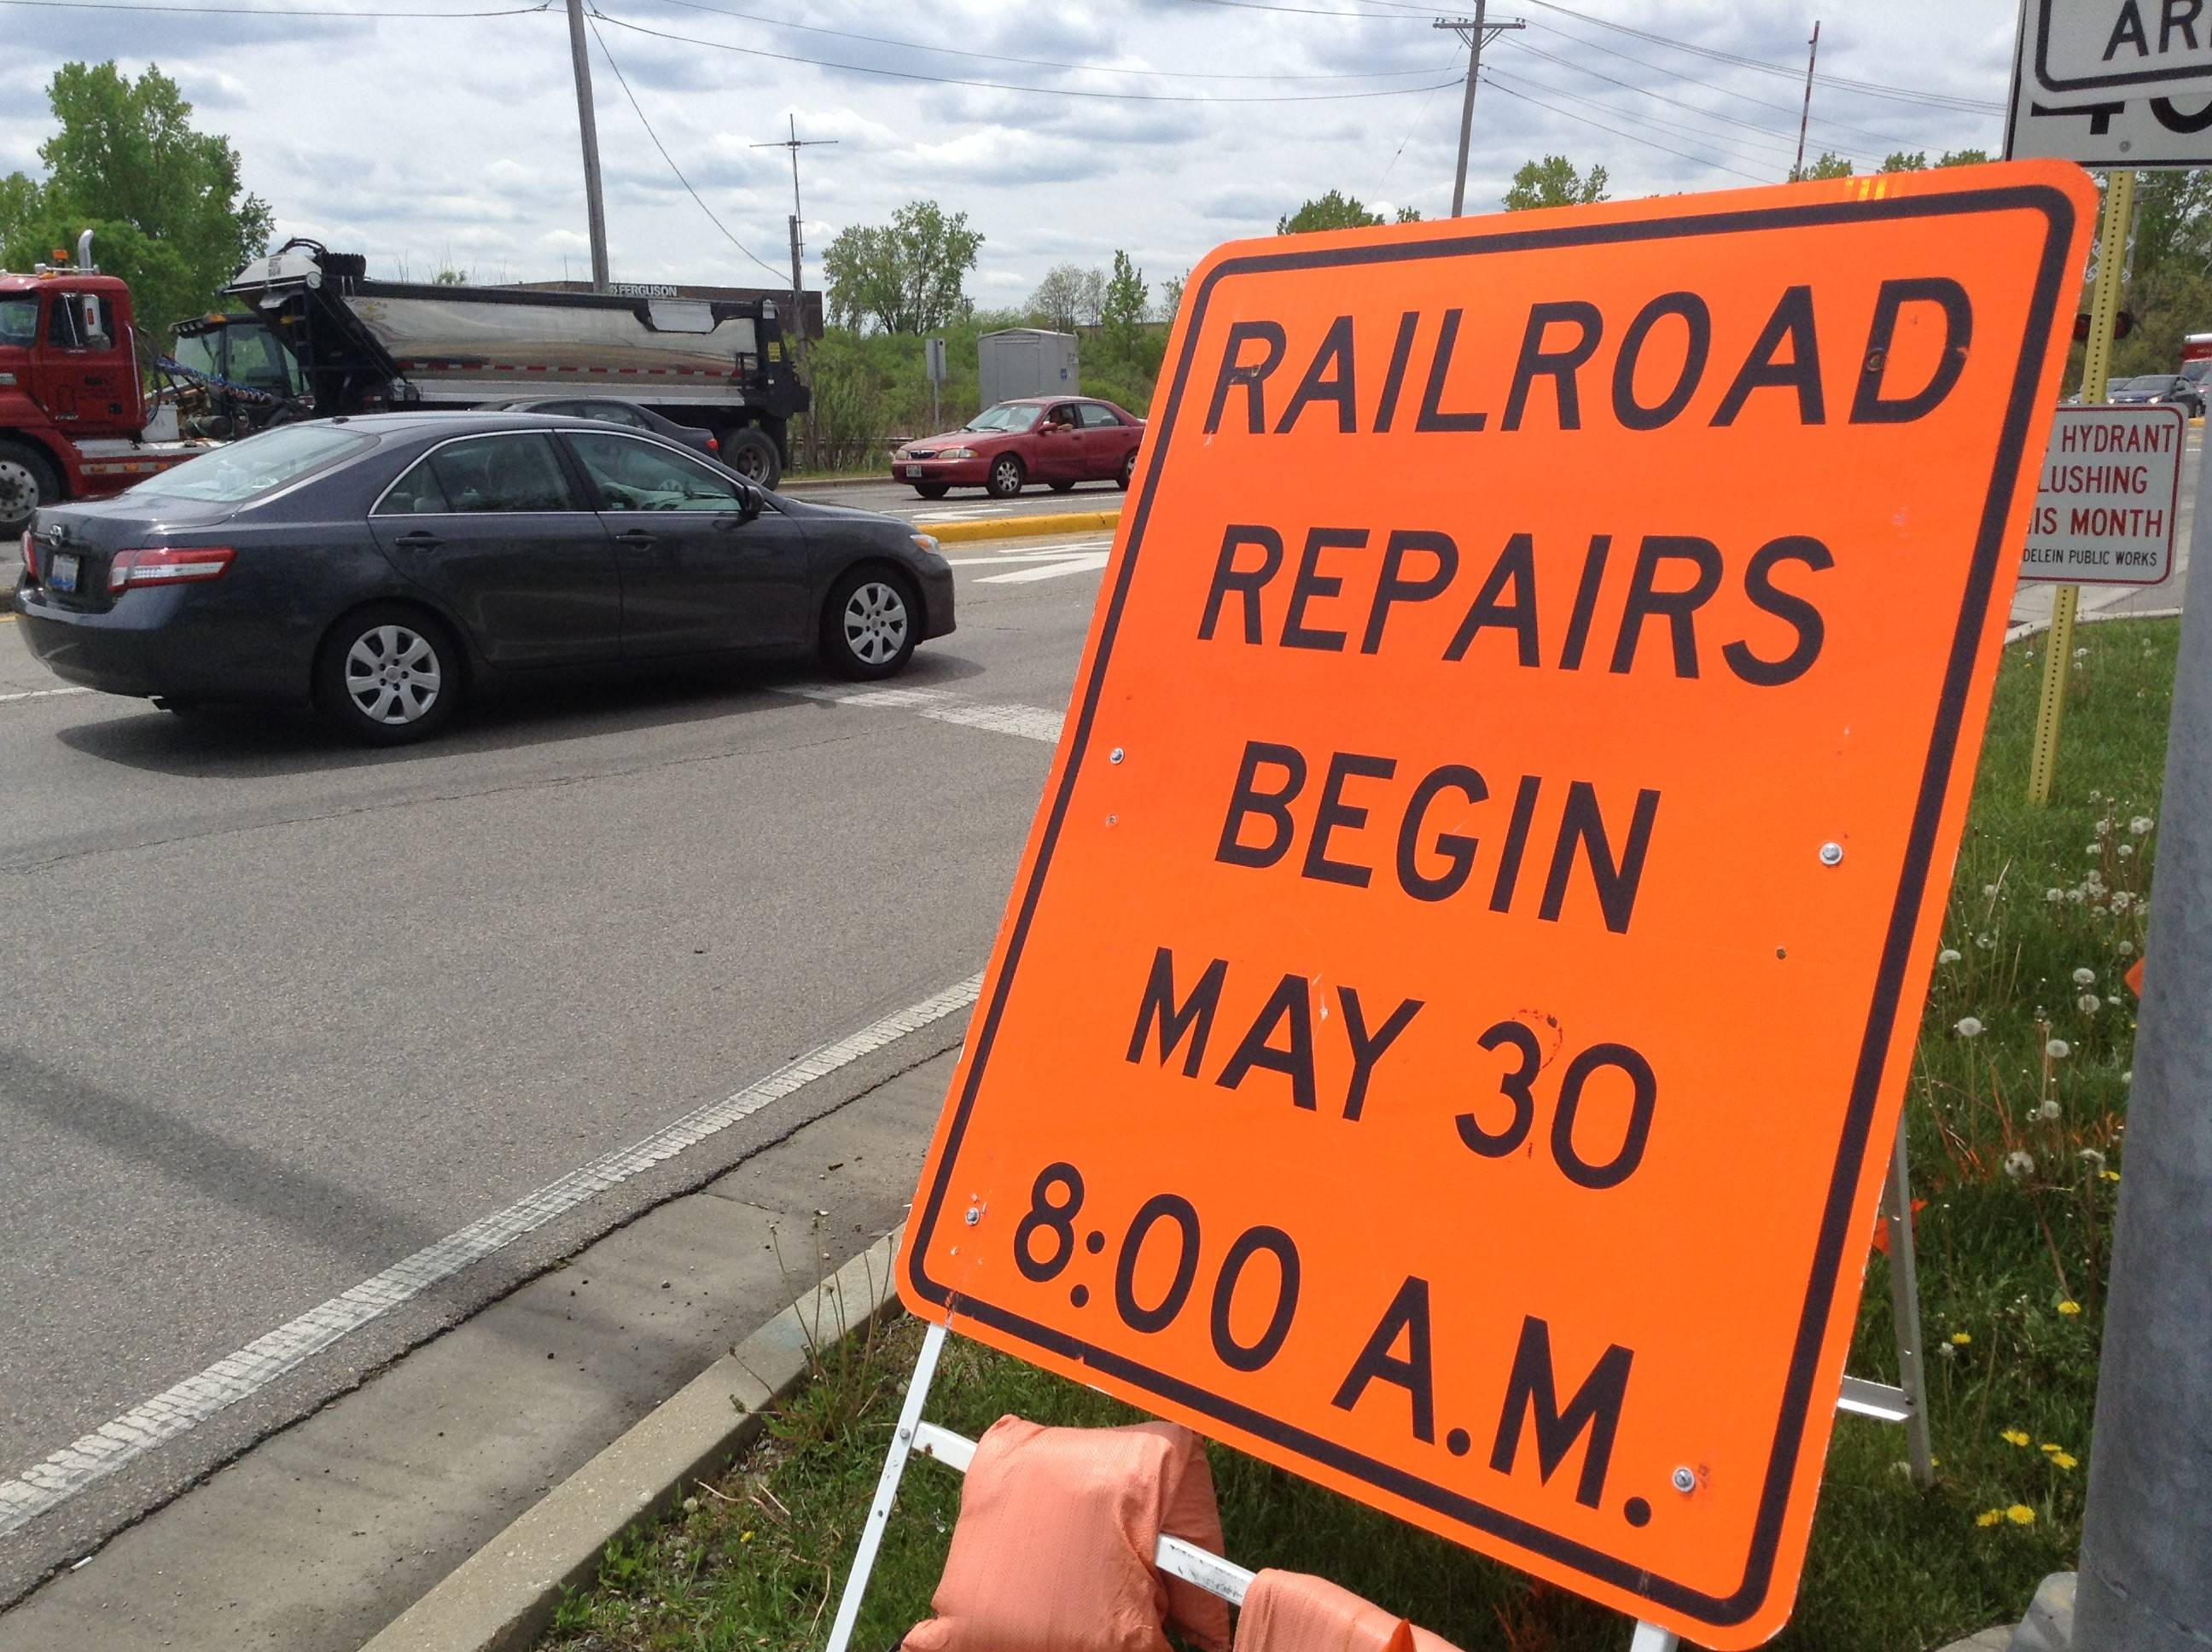 Train crossings on Route 60 and Butterfield Road in Mundelein will be closed starting May 30 for track repairs.